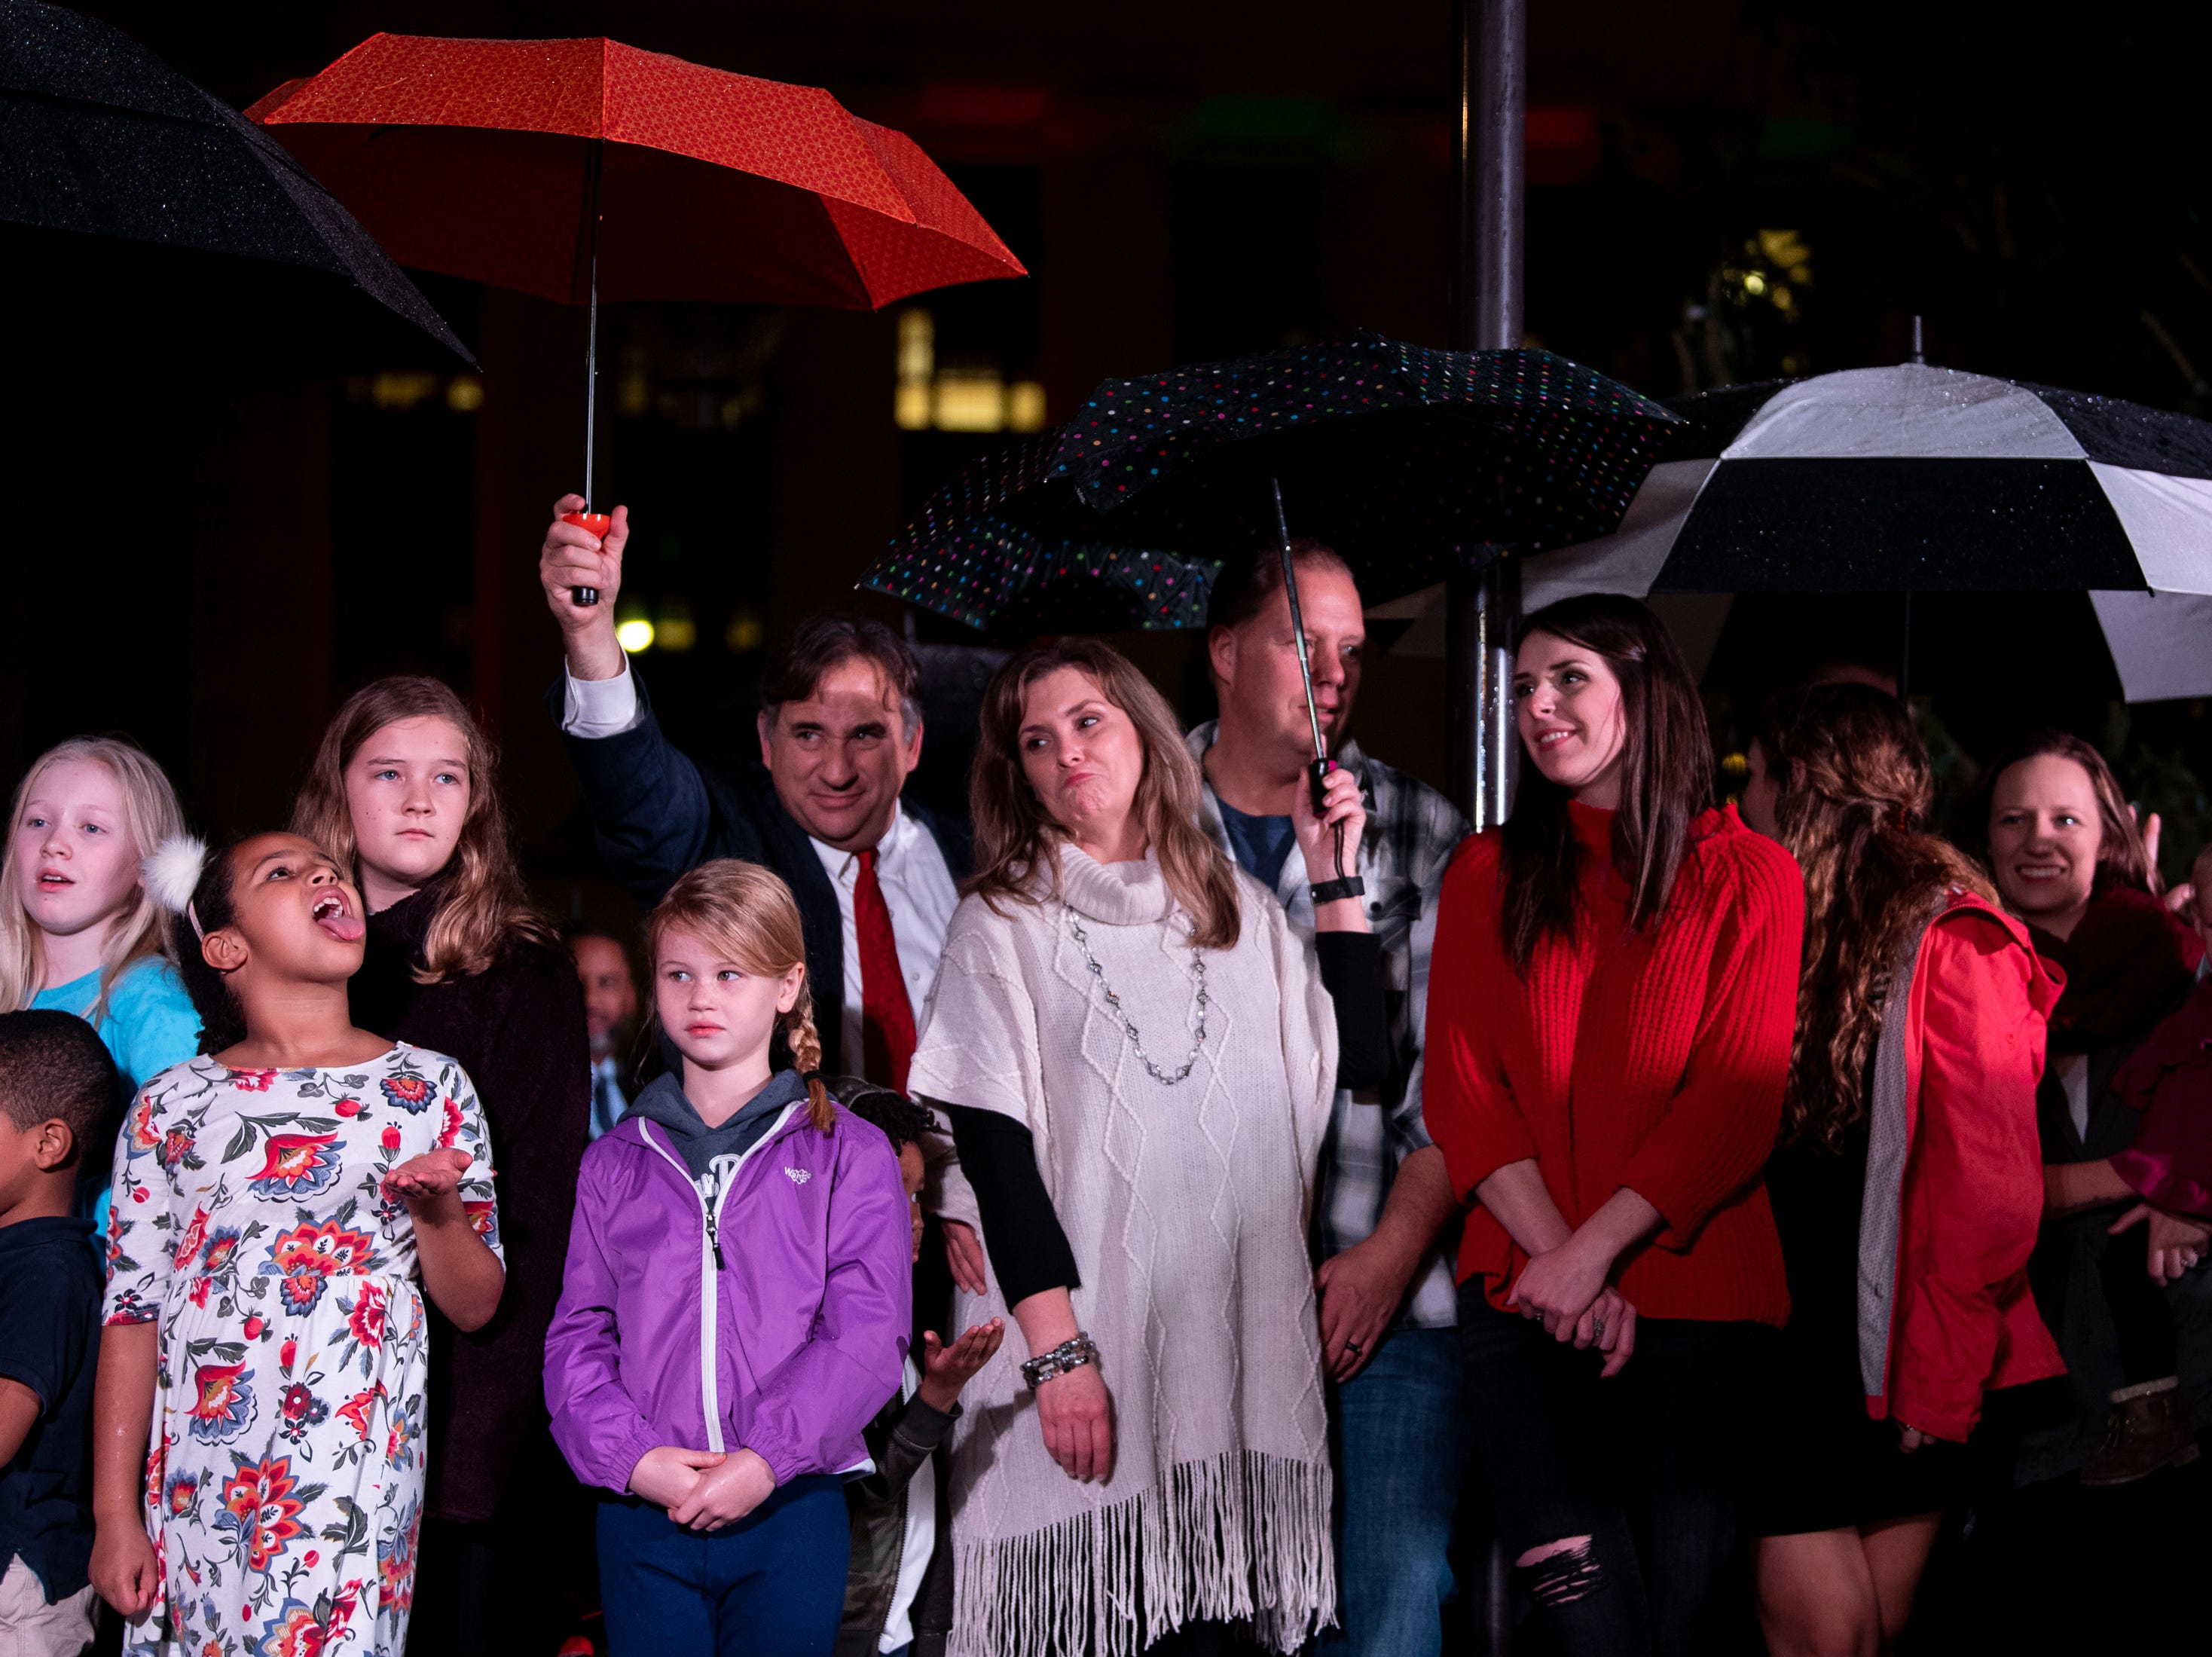 Guests take cover from rain during the Metro Nashville Christmas Tree Lighting event at Public Square Park in Nashville, Tenn., Friday, Nov. 30, 2018.